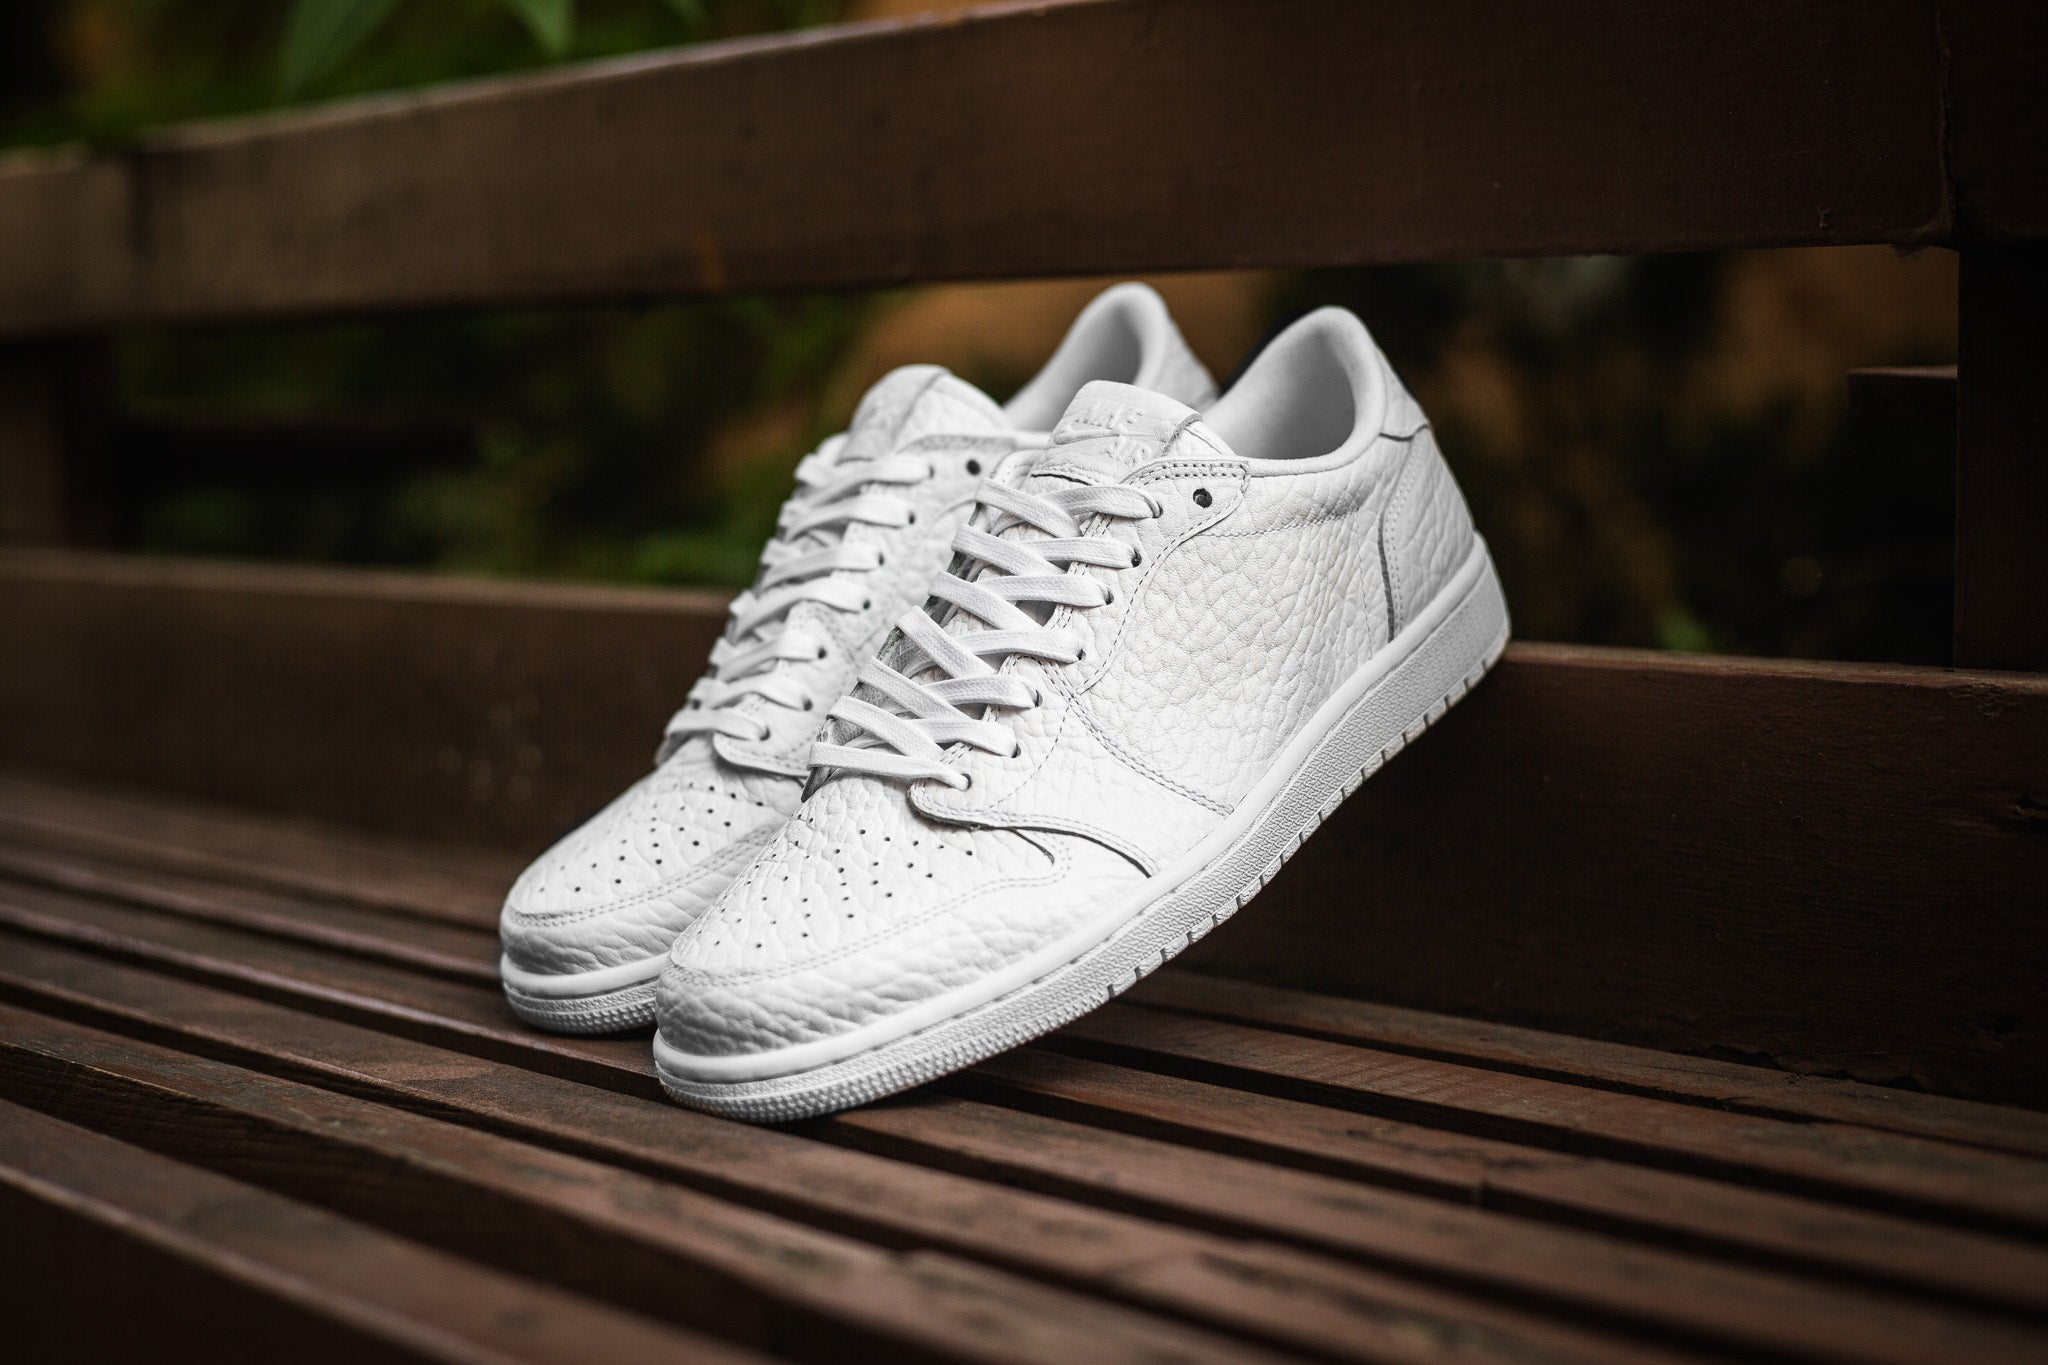 147c8b45a49048 ... release date air jordan 1 low ns triple white 07.16.16 87c1f f8f1c ...